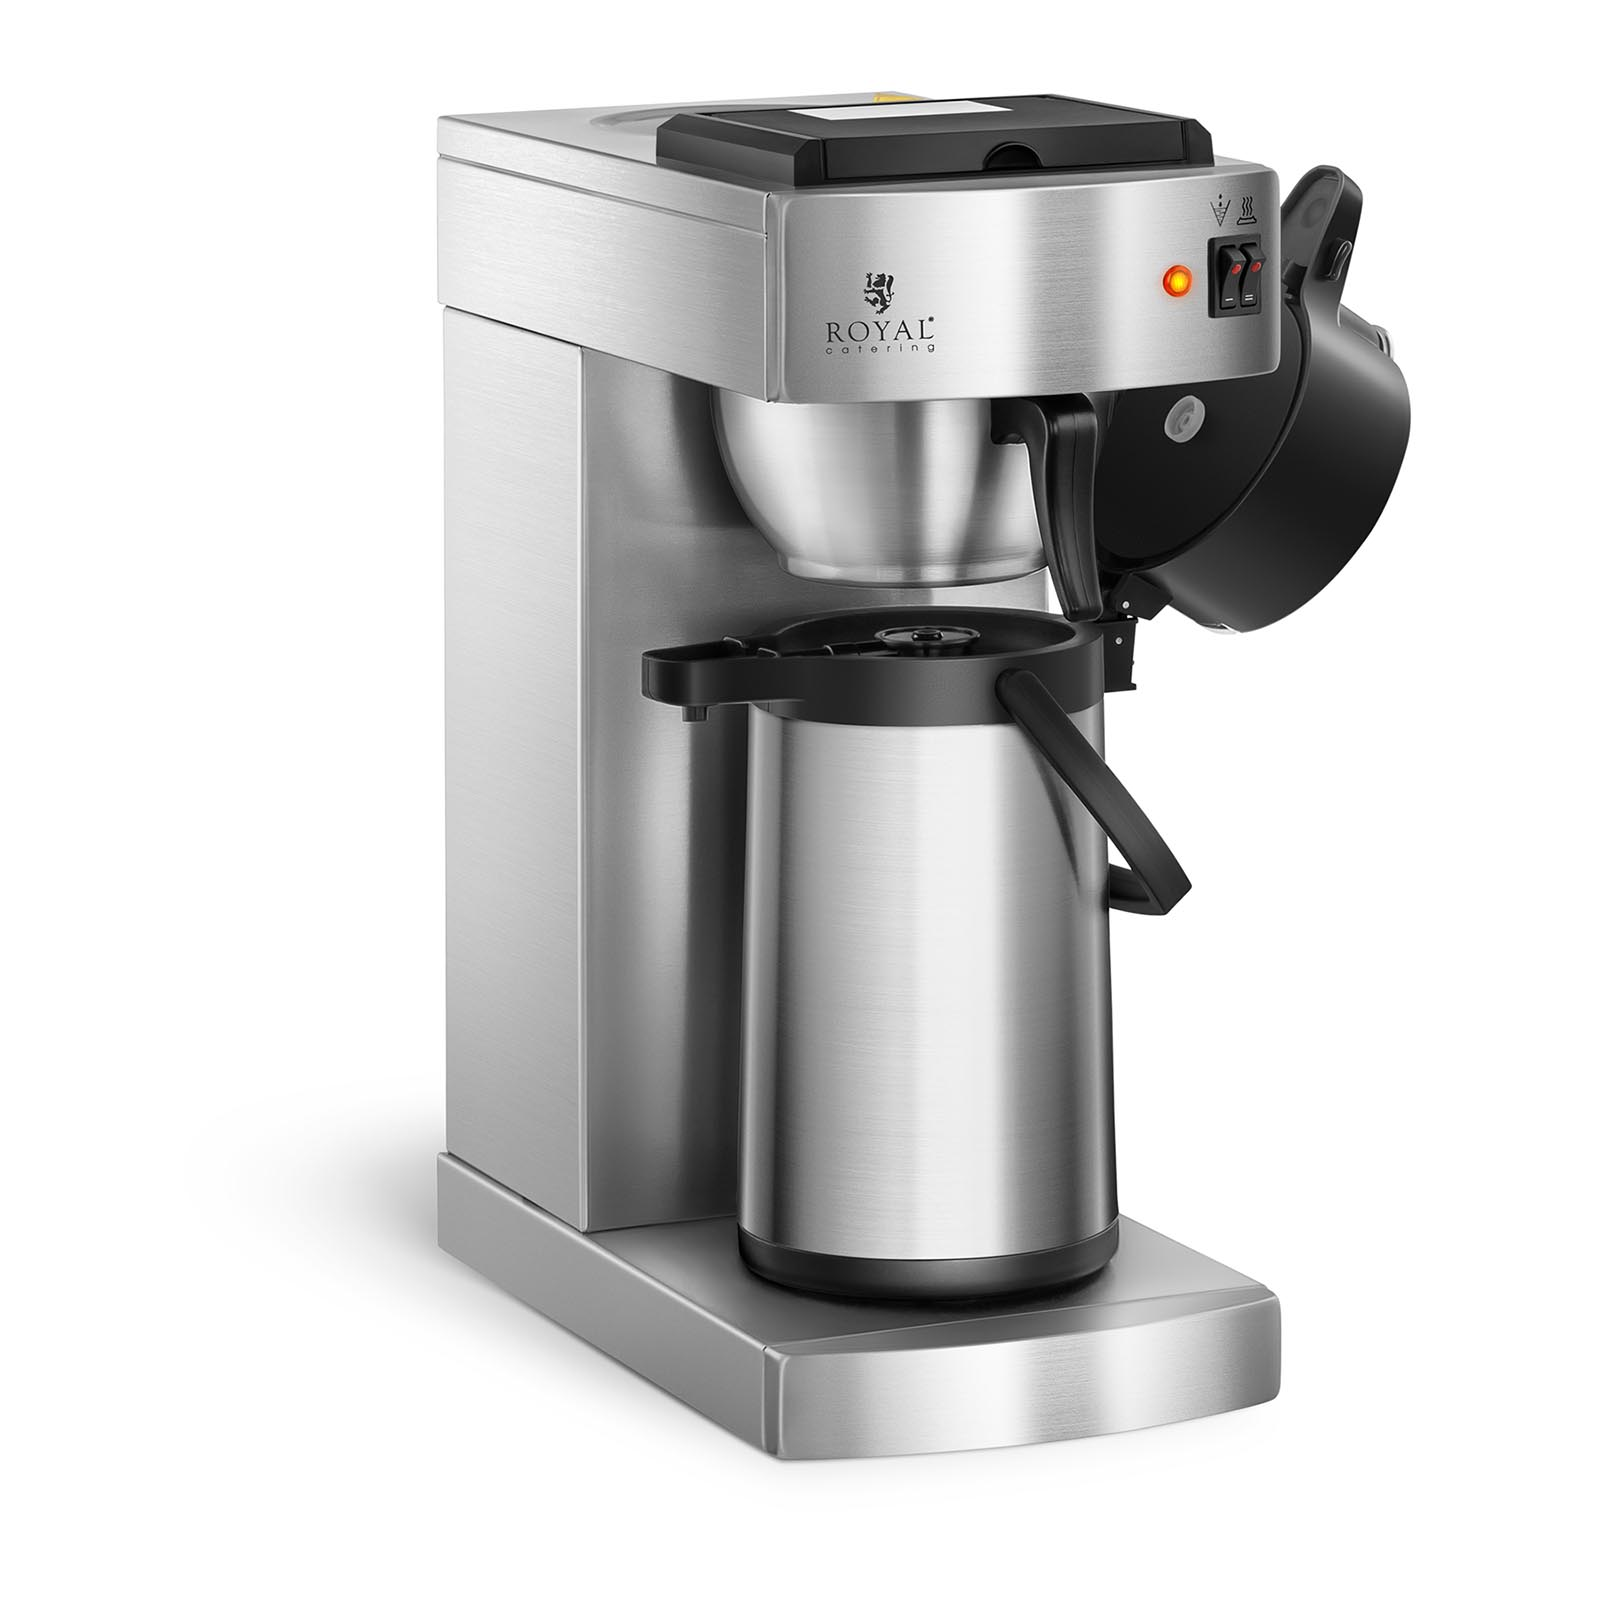 machine caf filtre professionnelle cafeti re filtre avec panier inox 2 2 l ebay. Black Bedroom Furniture Sets. Home Design Ideas